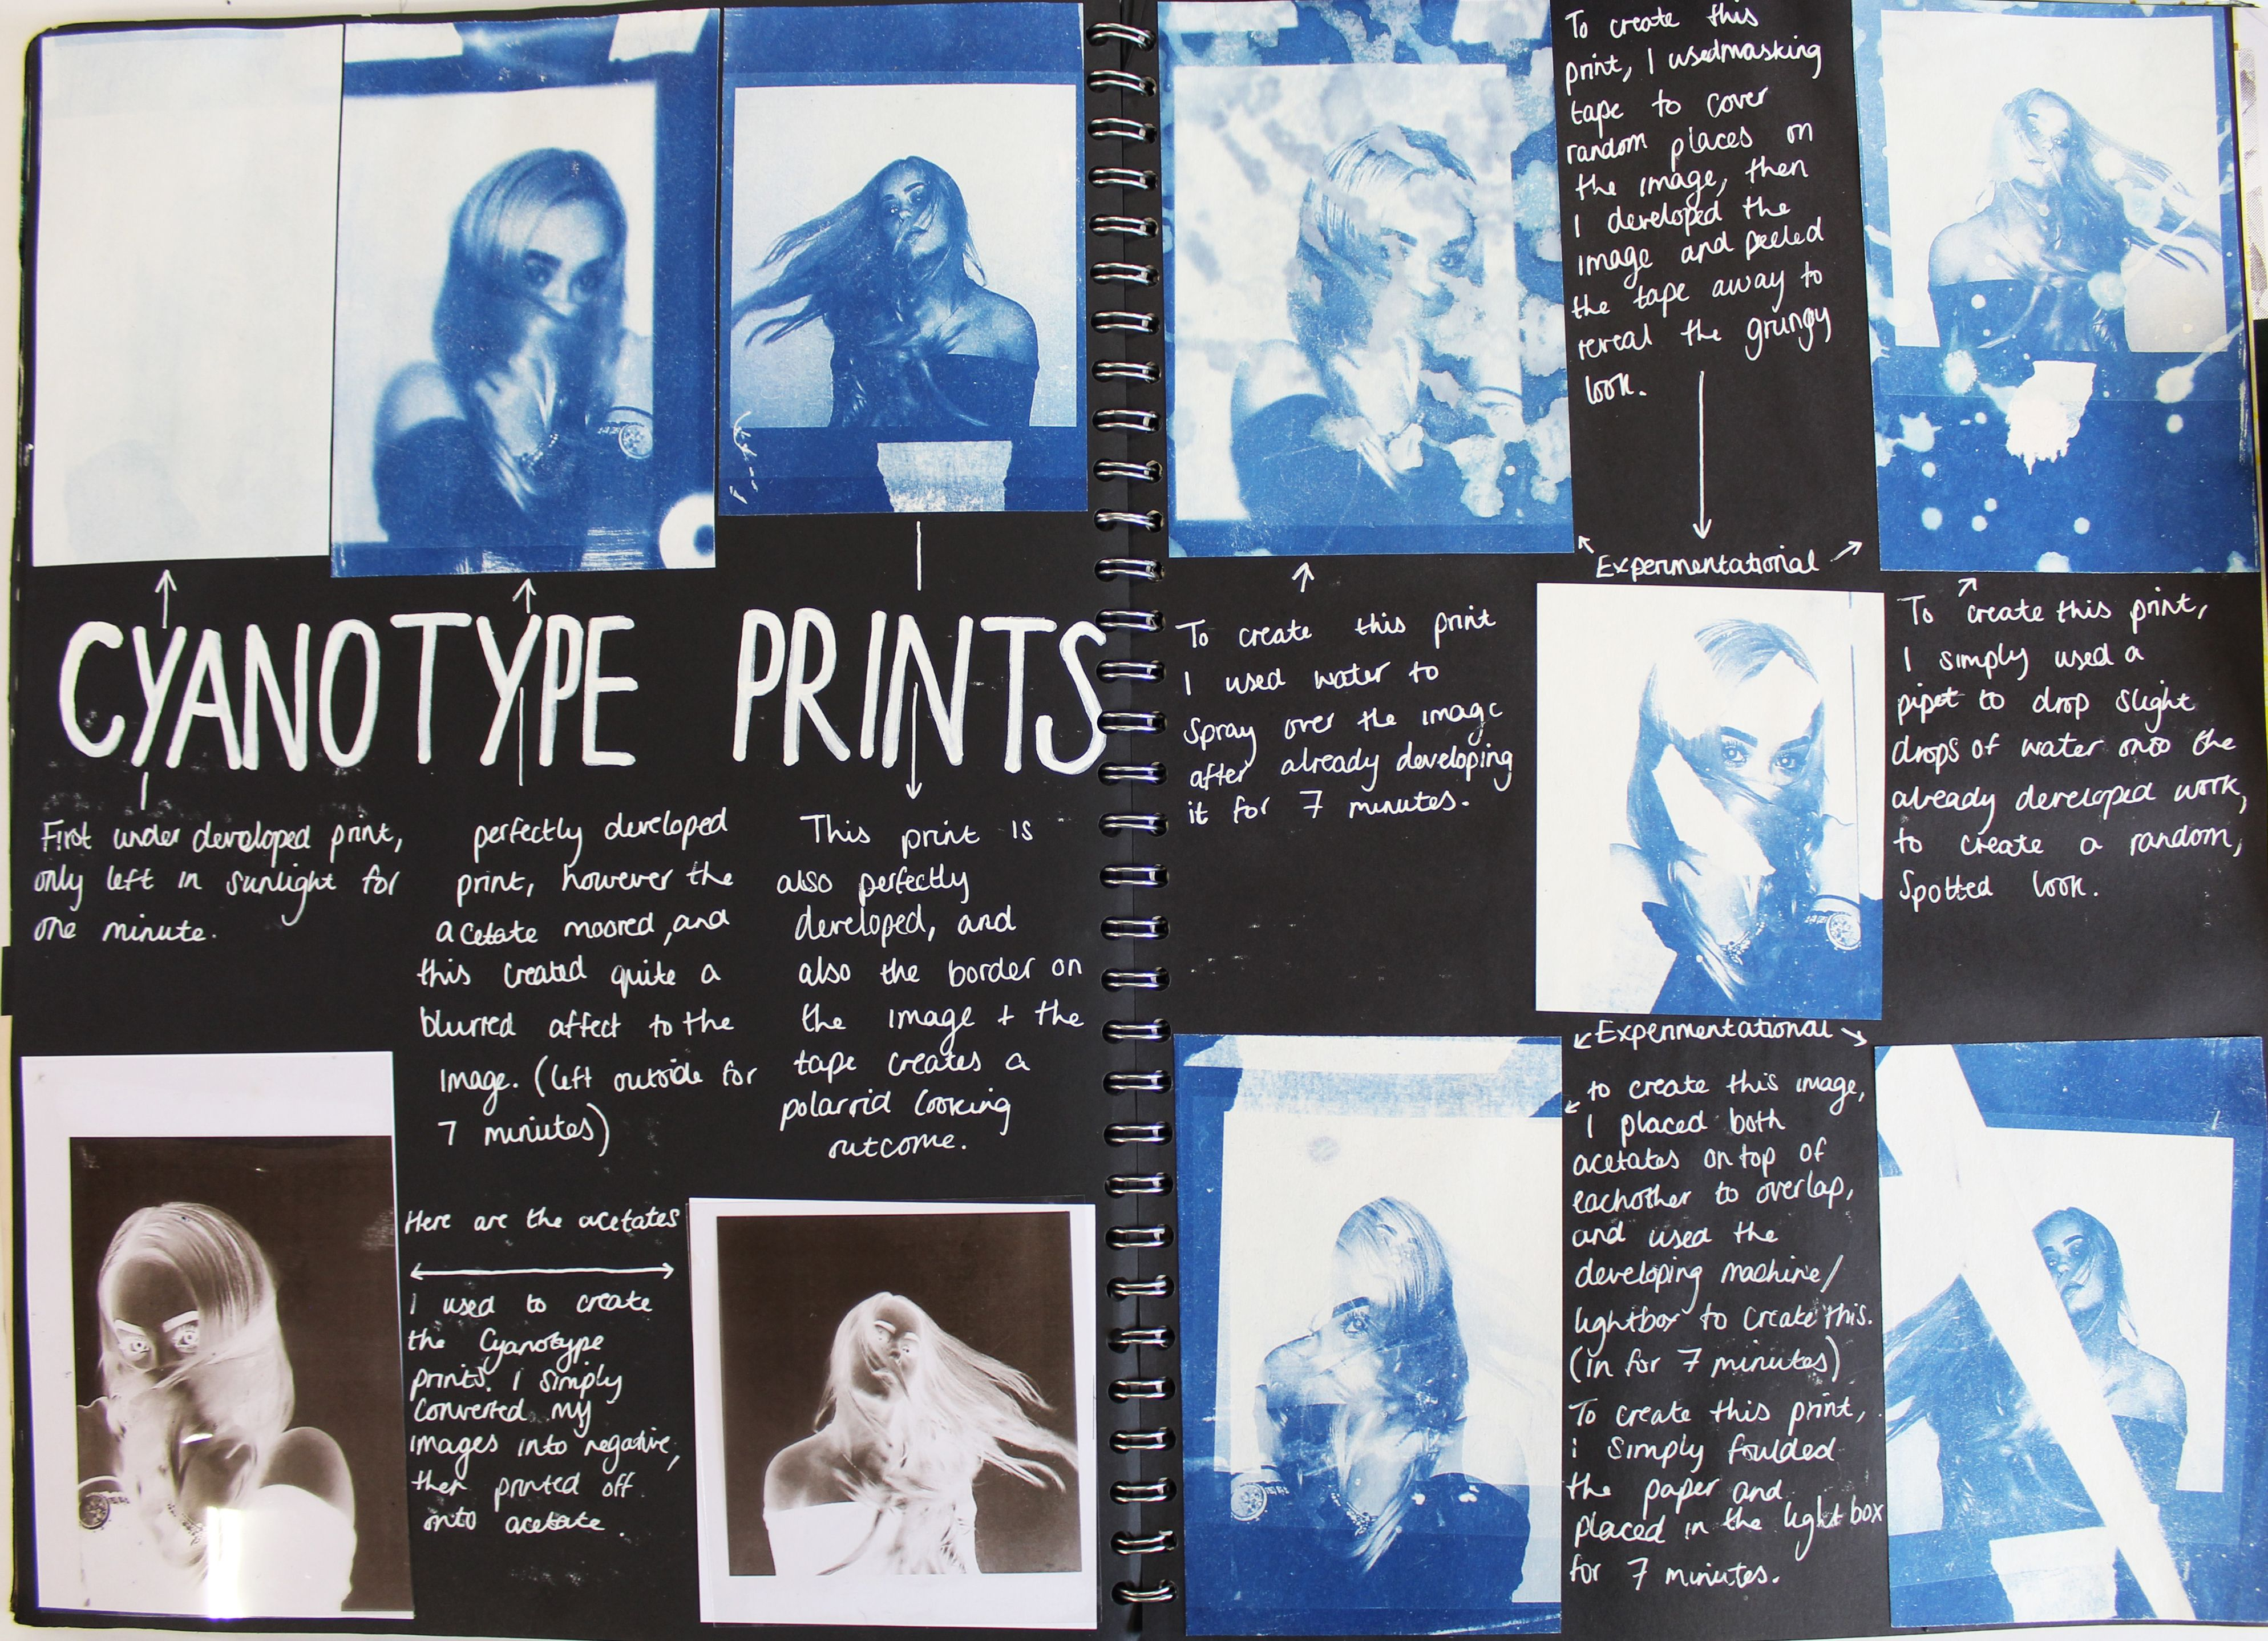 A1 Graphics A3 Black Sketchbook Cyanotype Prints Component 1 Freedom And Or Limitations Thomas Rotherham College 2018 Sketch Book Cyanotype Prints